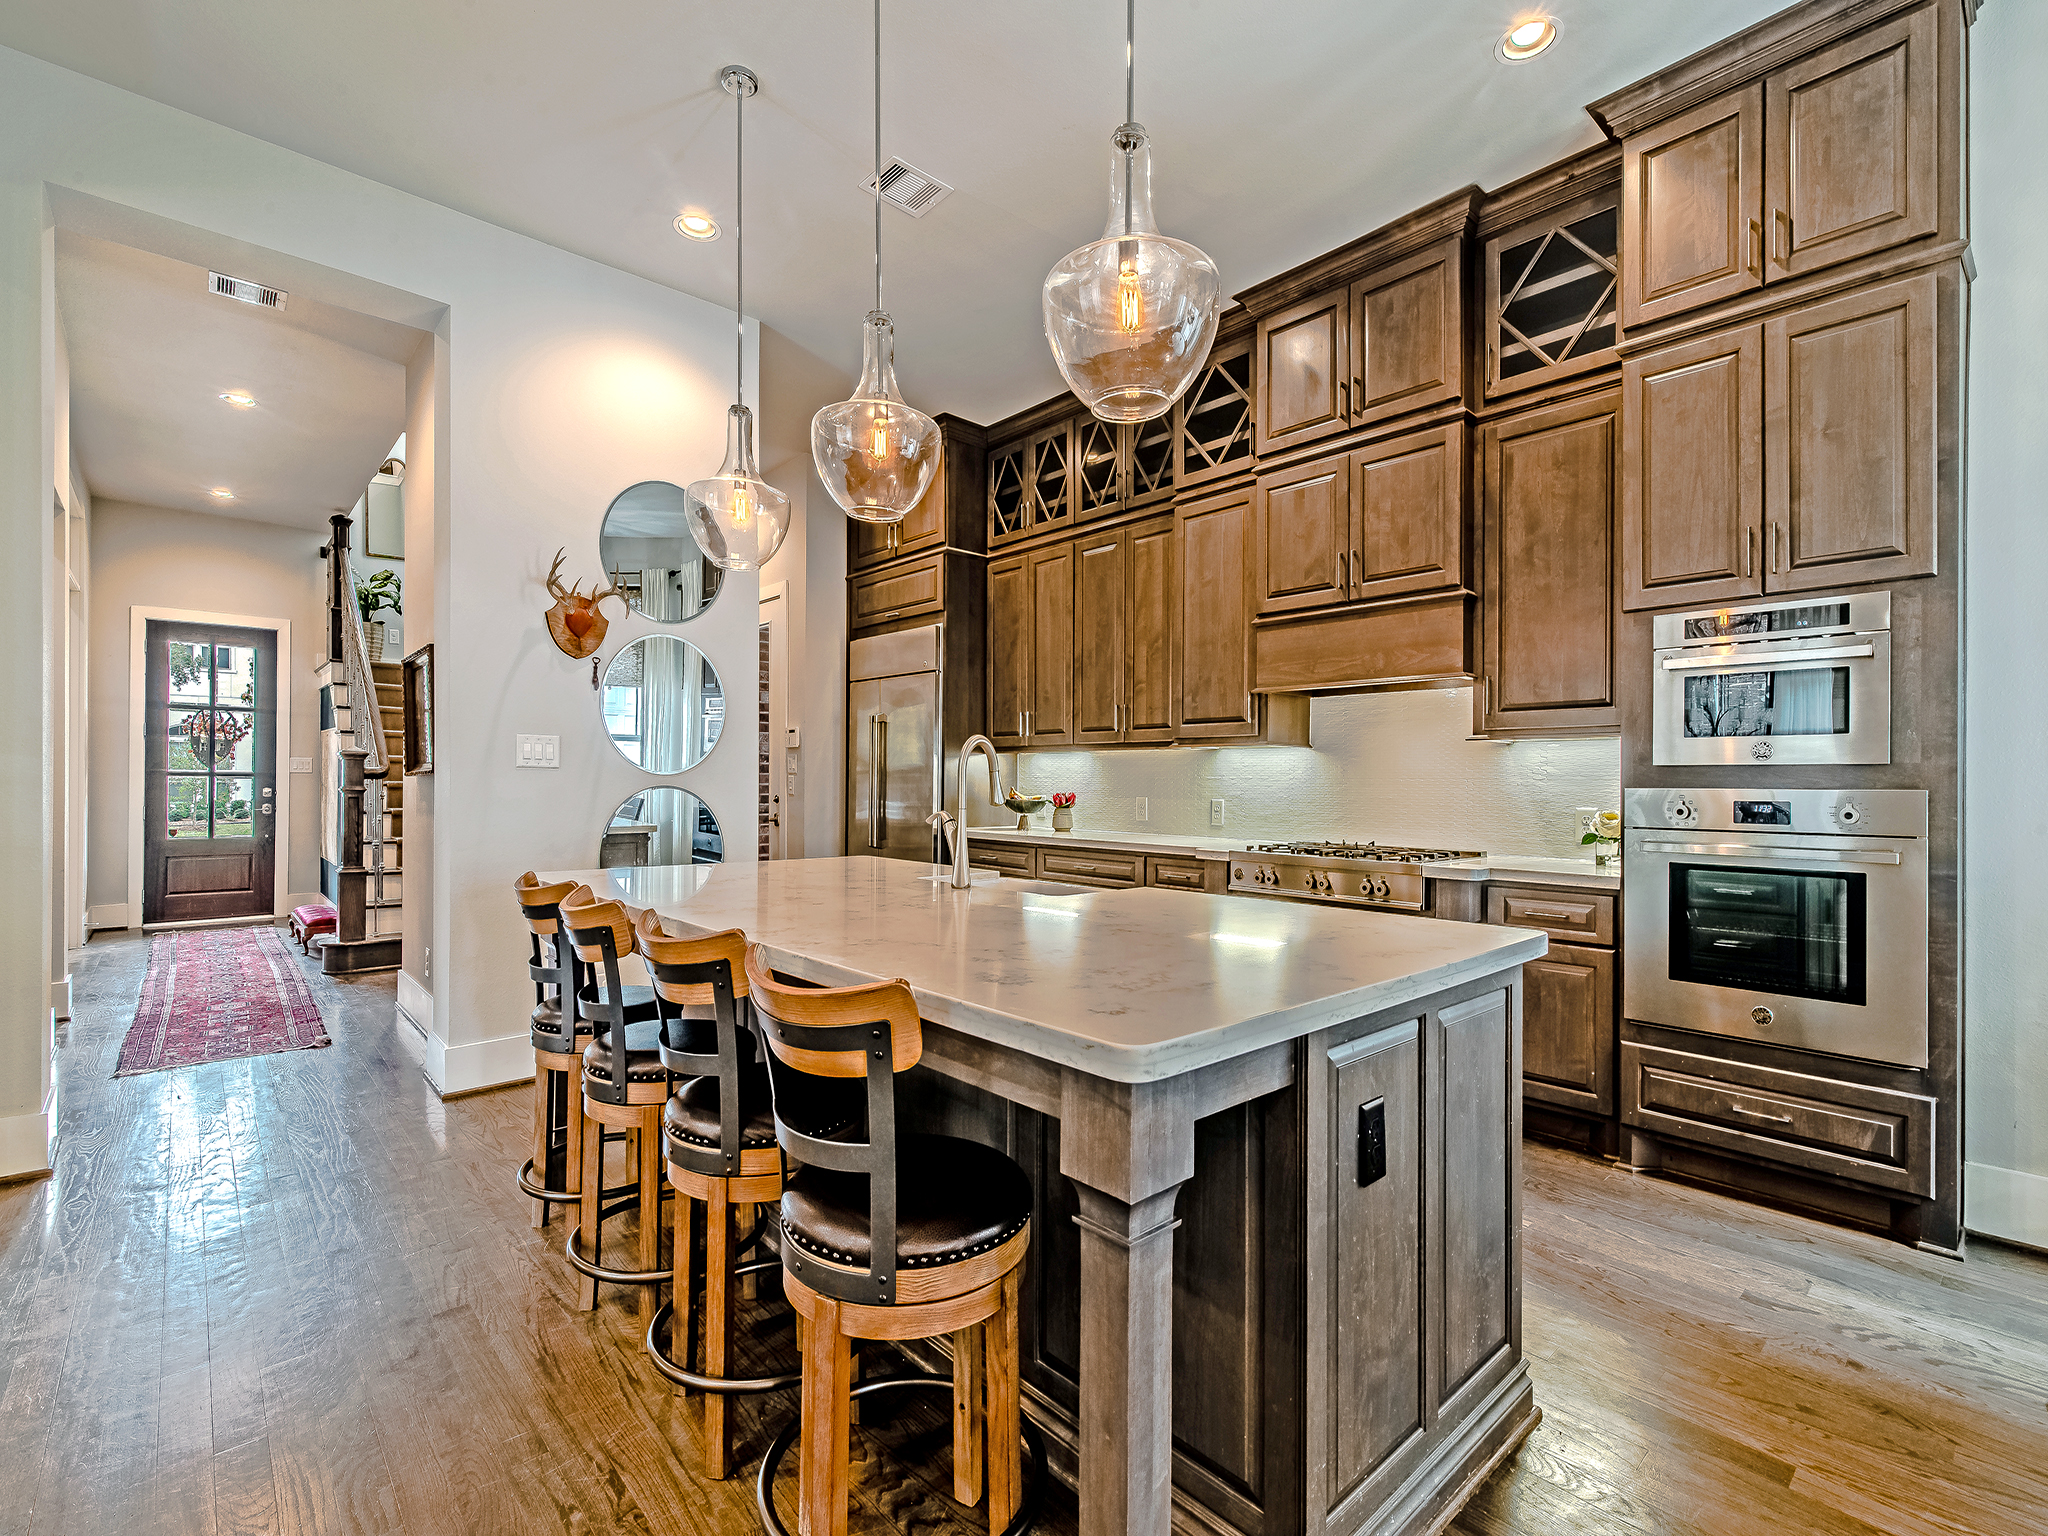 Kitchen features custom, ceiling height cabinetry and Bertazzoni appliance package.